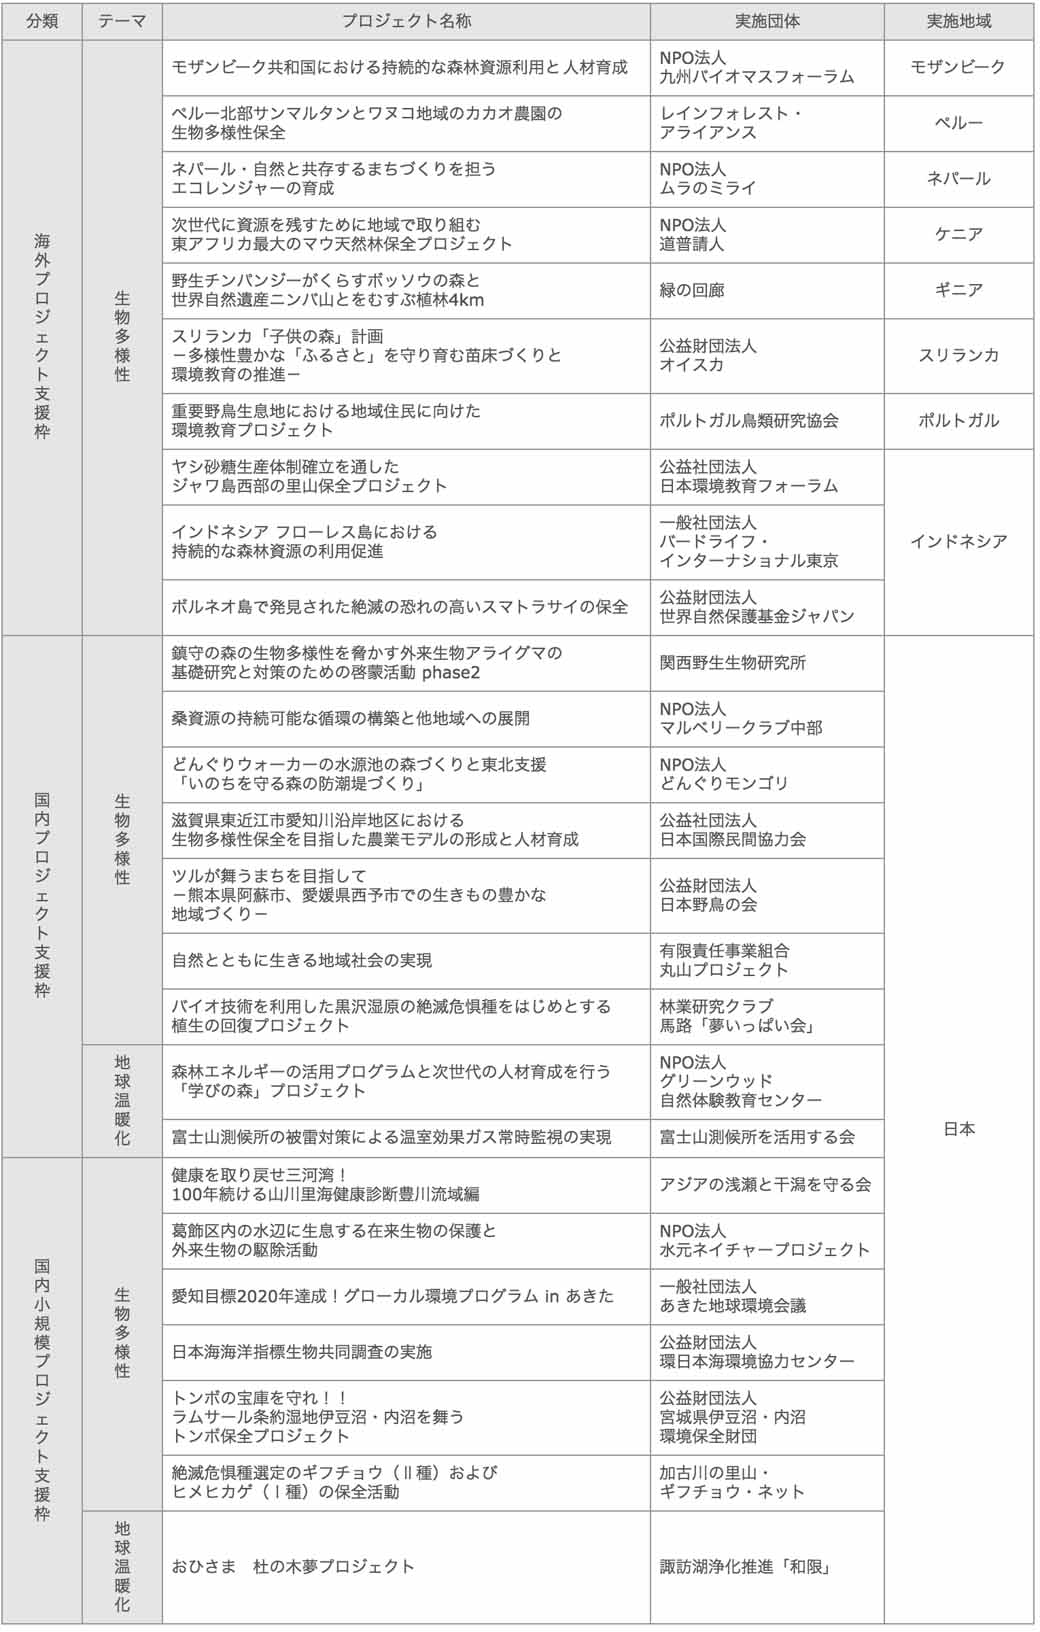 toyota-motor-corporation-toyota-environmental-activities-grant-program-start-the-recruitment-of-the-2016-fiscal-year20160428-3